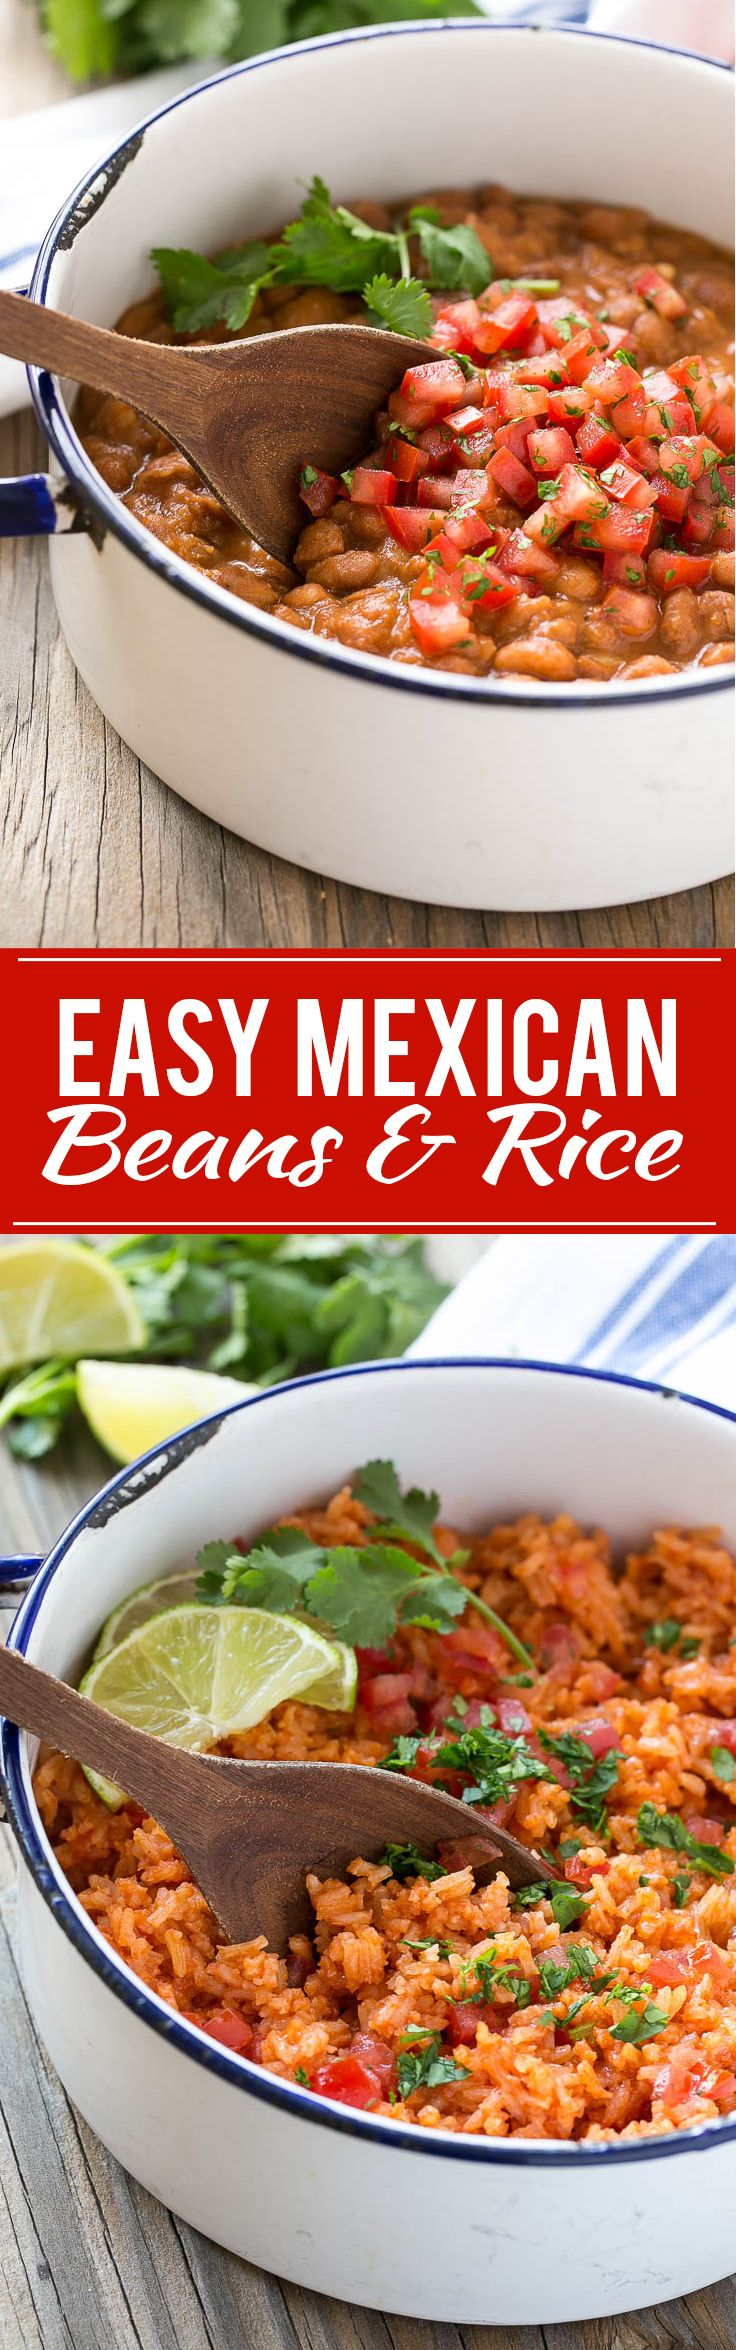 Easy Mexican Pinto Beans and Rice - The mexican rice has a secret ingredient that makes it taste like it came from a restaurant, and the pinto beans are ready in just 10 minutes.